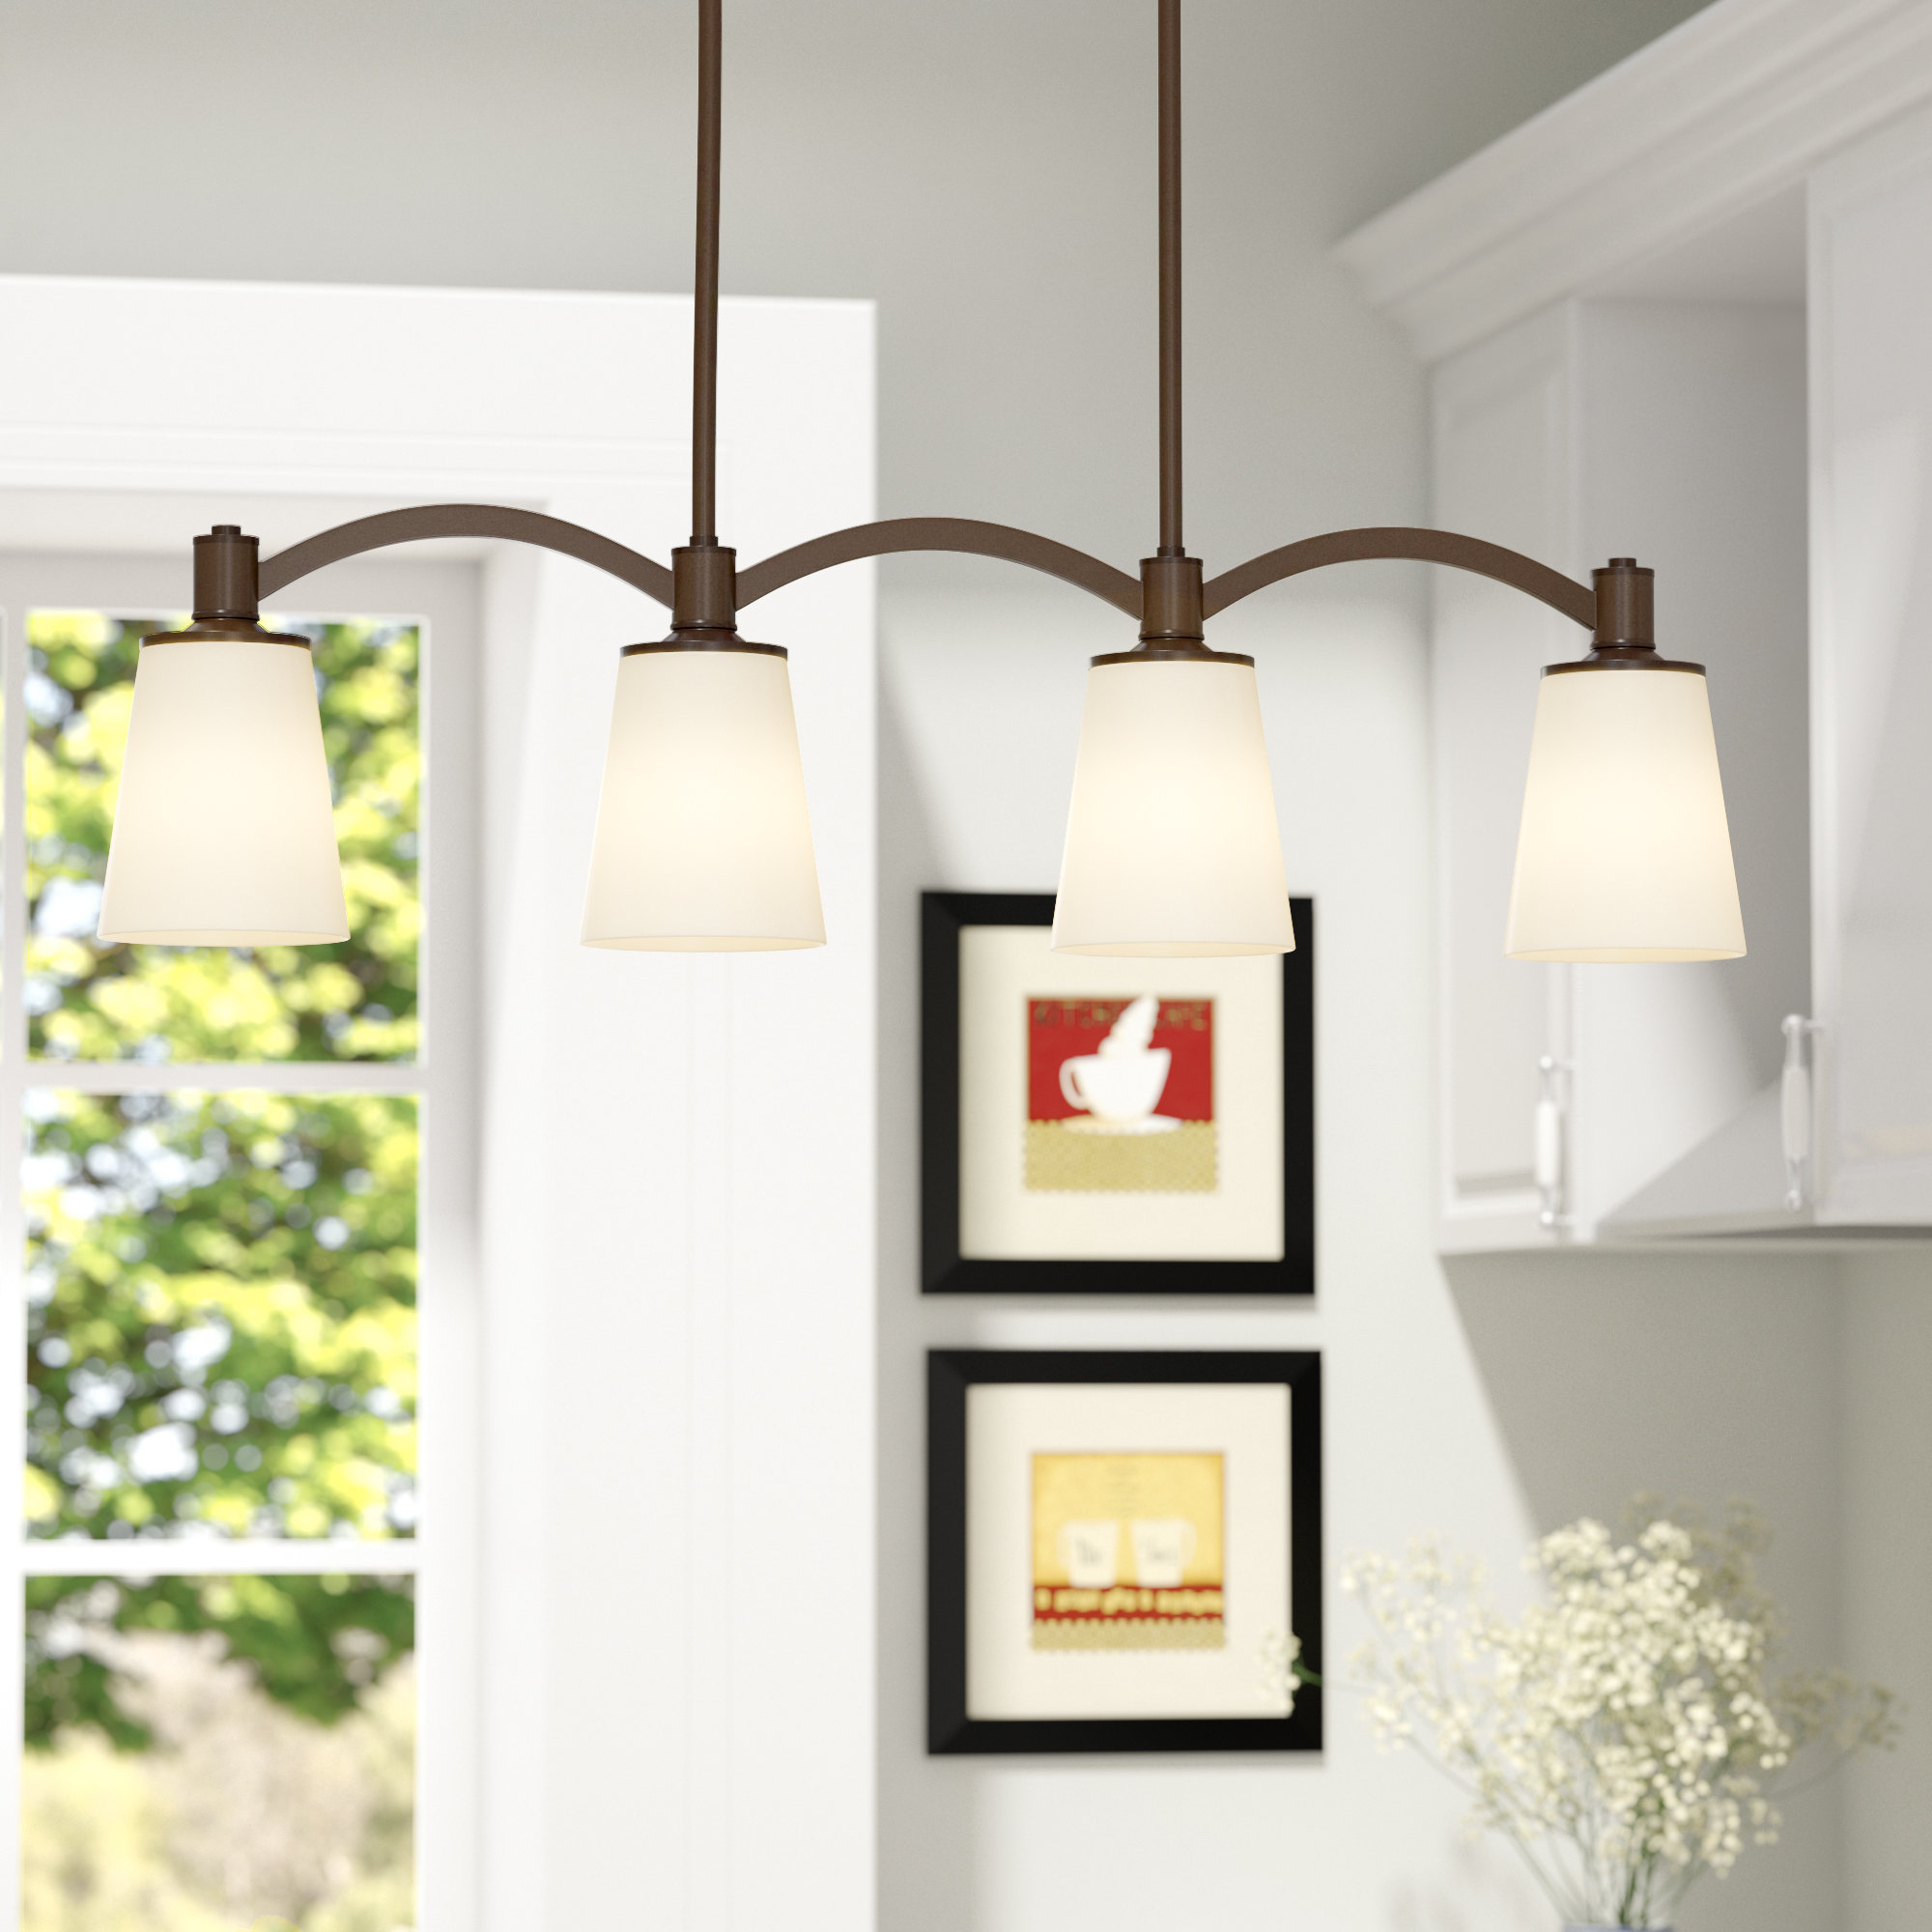 Smithville 4-Light Kitchen Island Pendant with Cinchring 4-Light Kitchen Island Linear Pendants (Image 30 of 30)